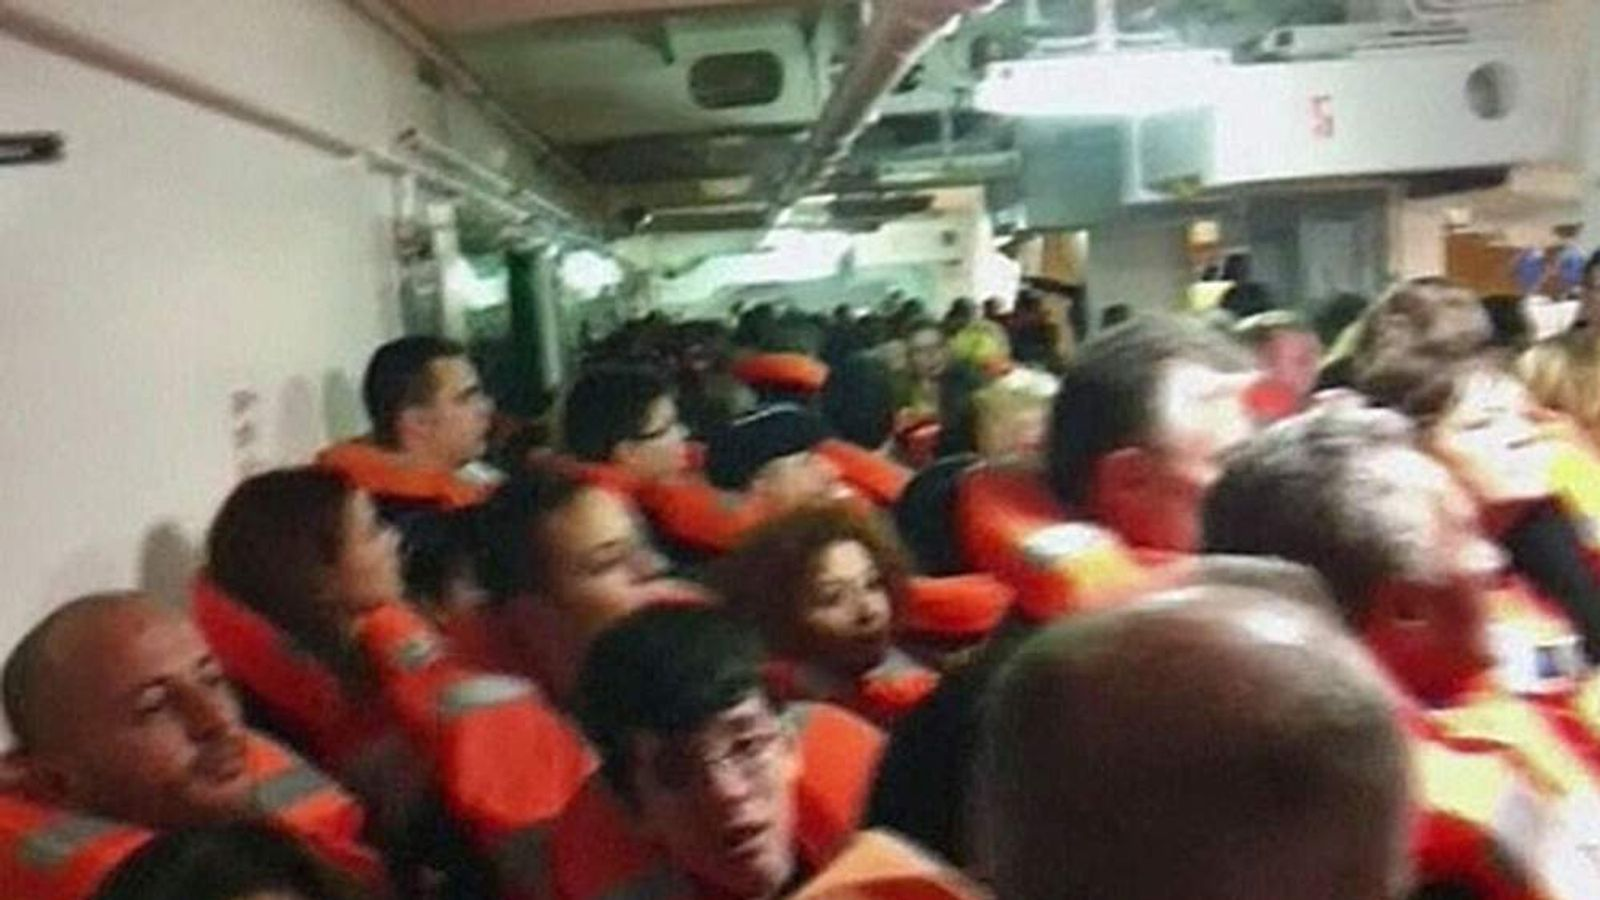 Amateur video showed passengers wearing life jackets crowded on the outer decks waiting to get on to lifeboats after the Costa Concordia ran aground off Italy's coast.